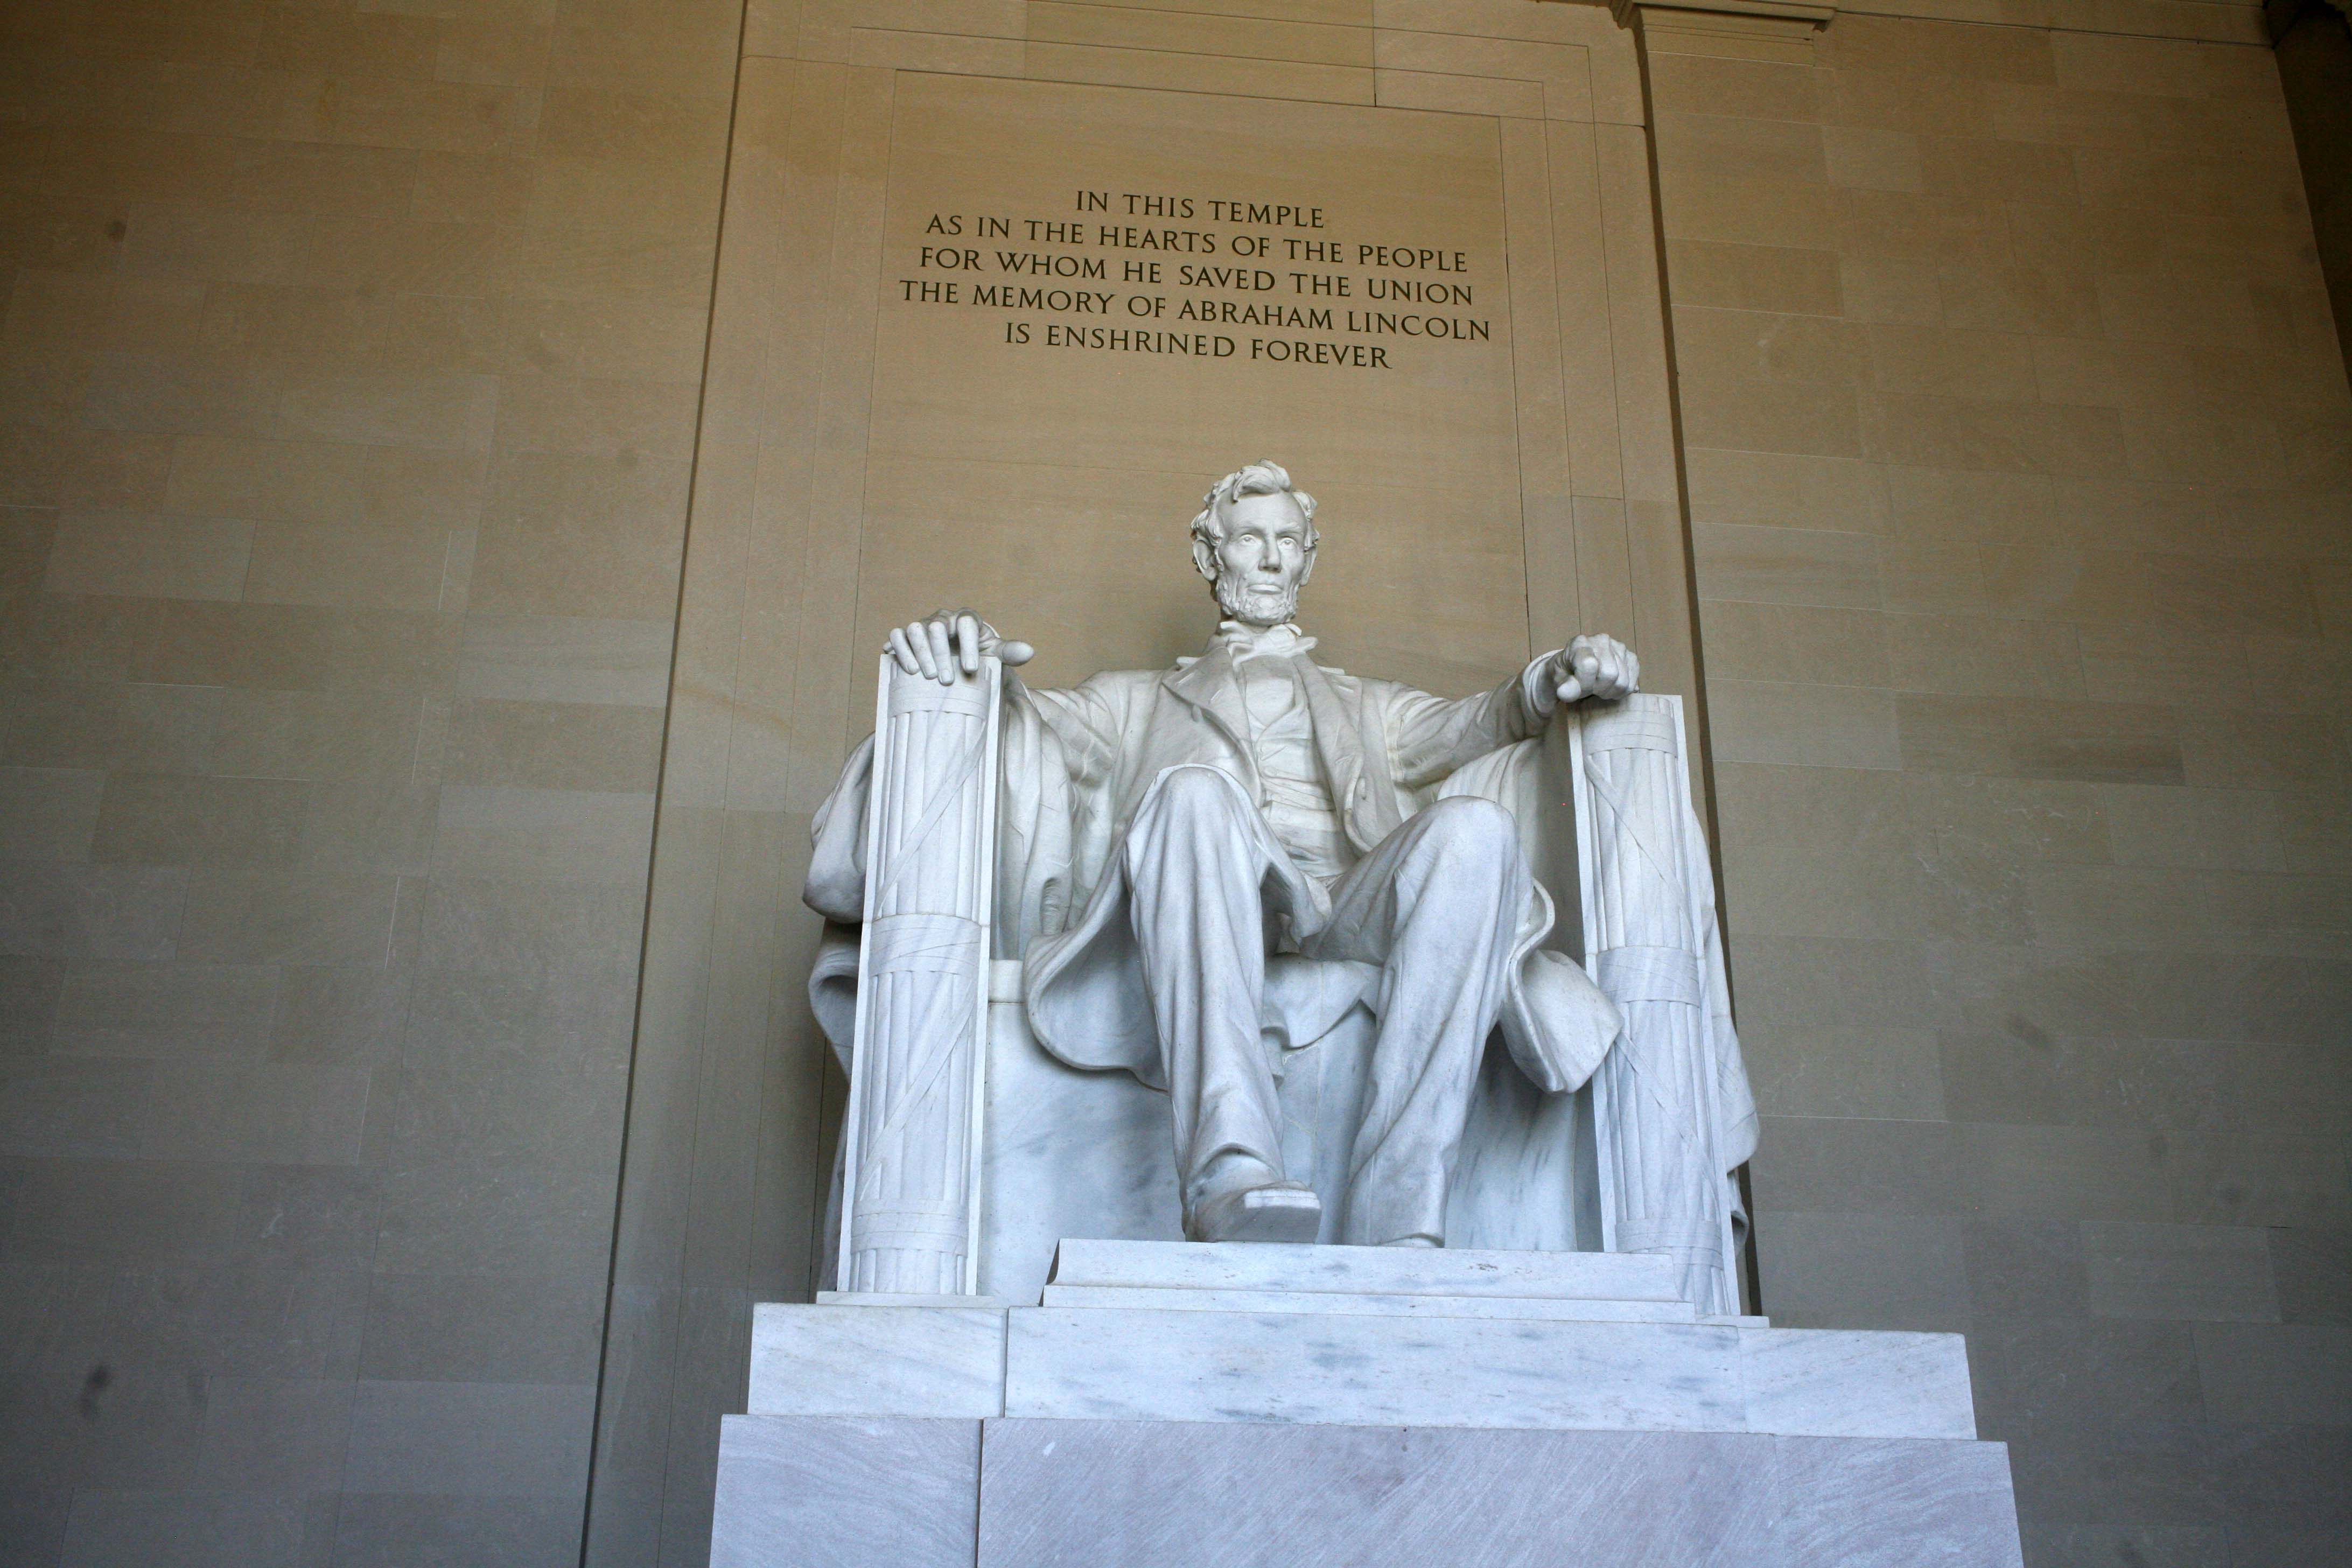 Lincoln the Enshirned Statue